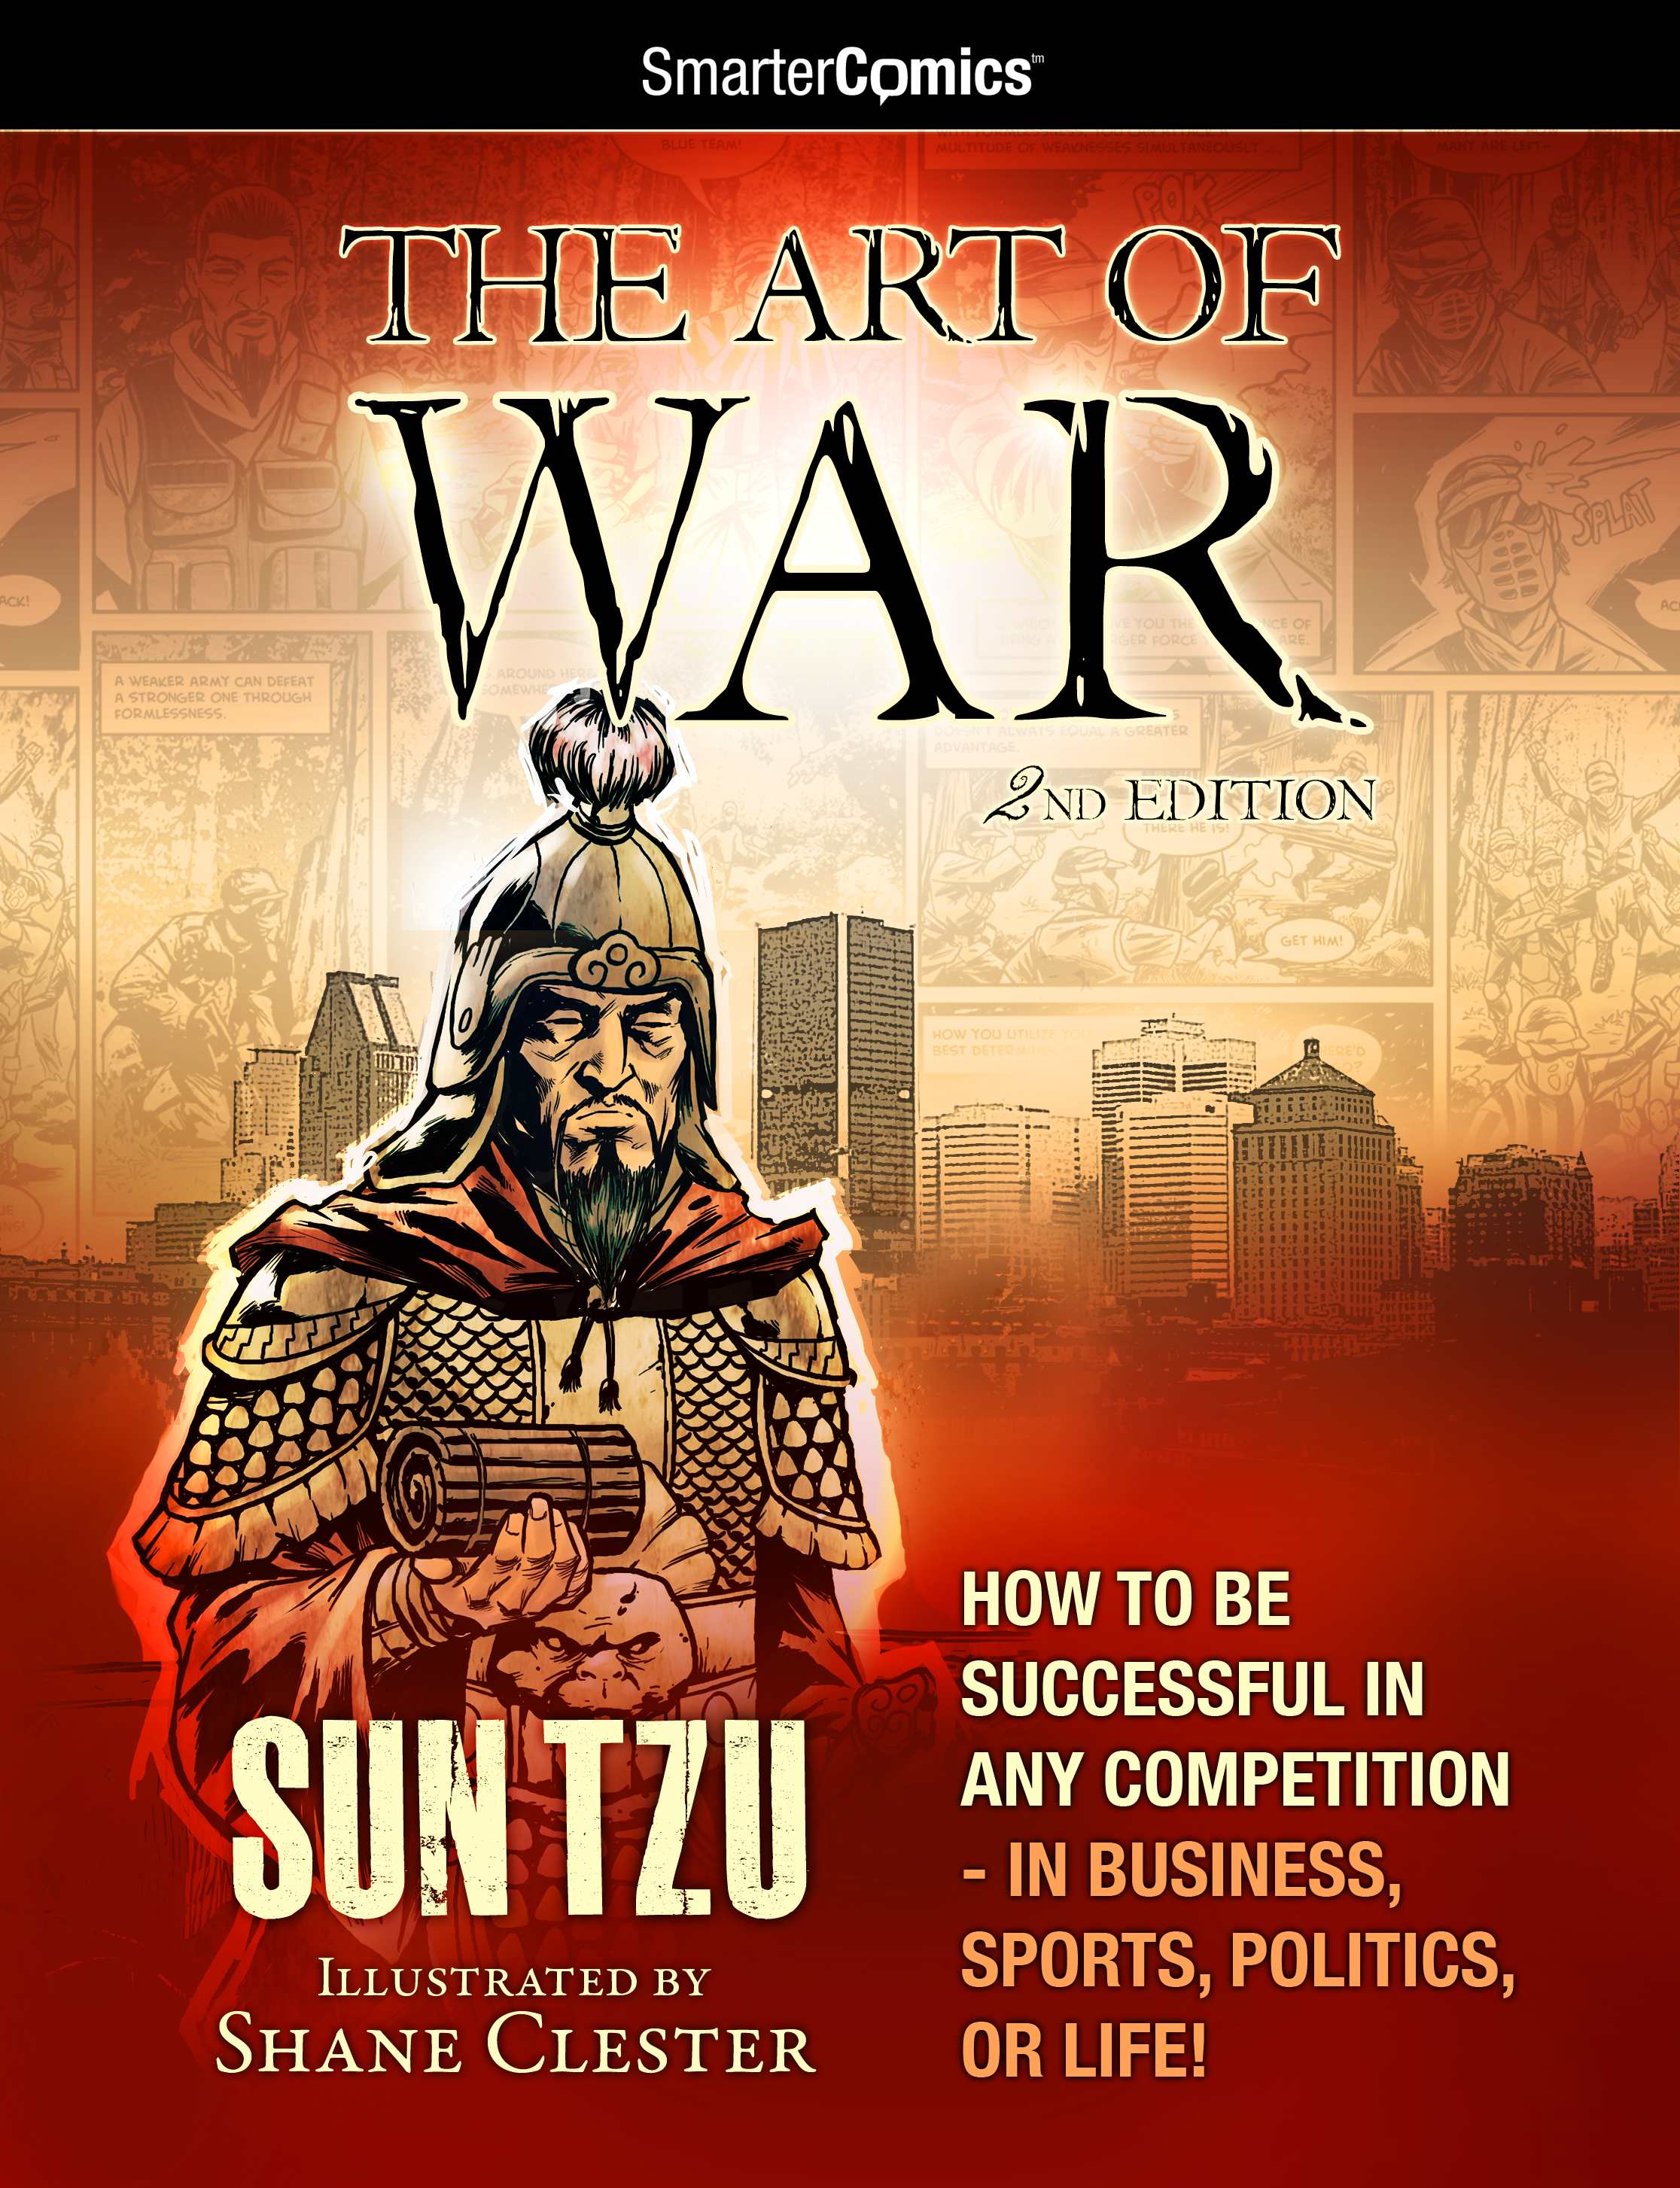 The Art of War from SmarterComics: How to be Successful in Any Competition